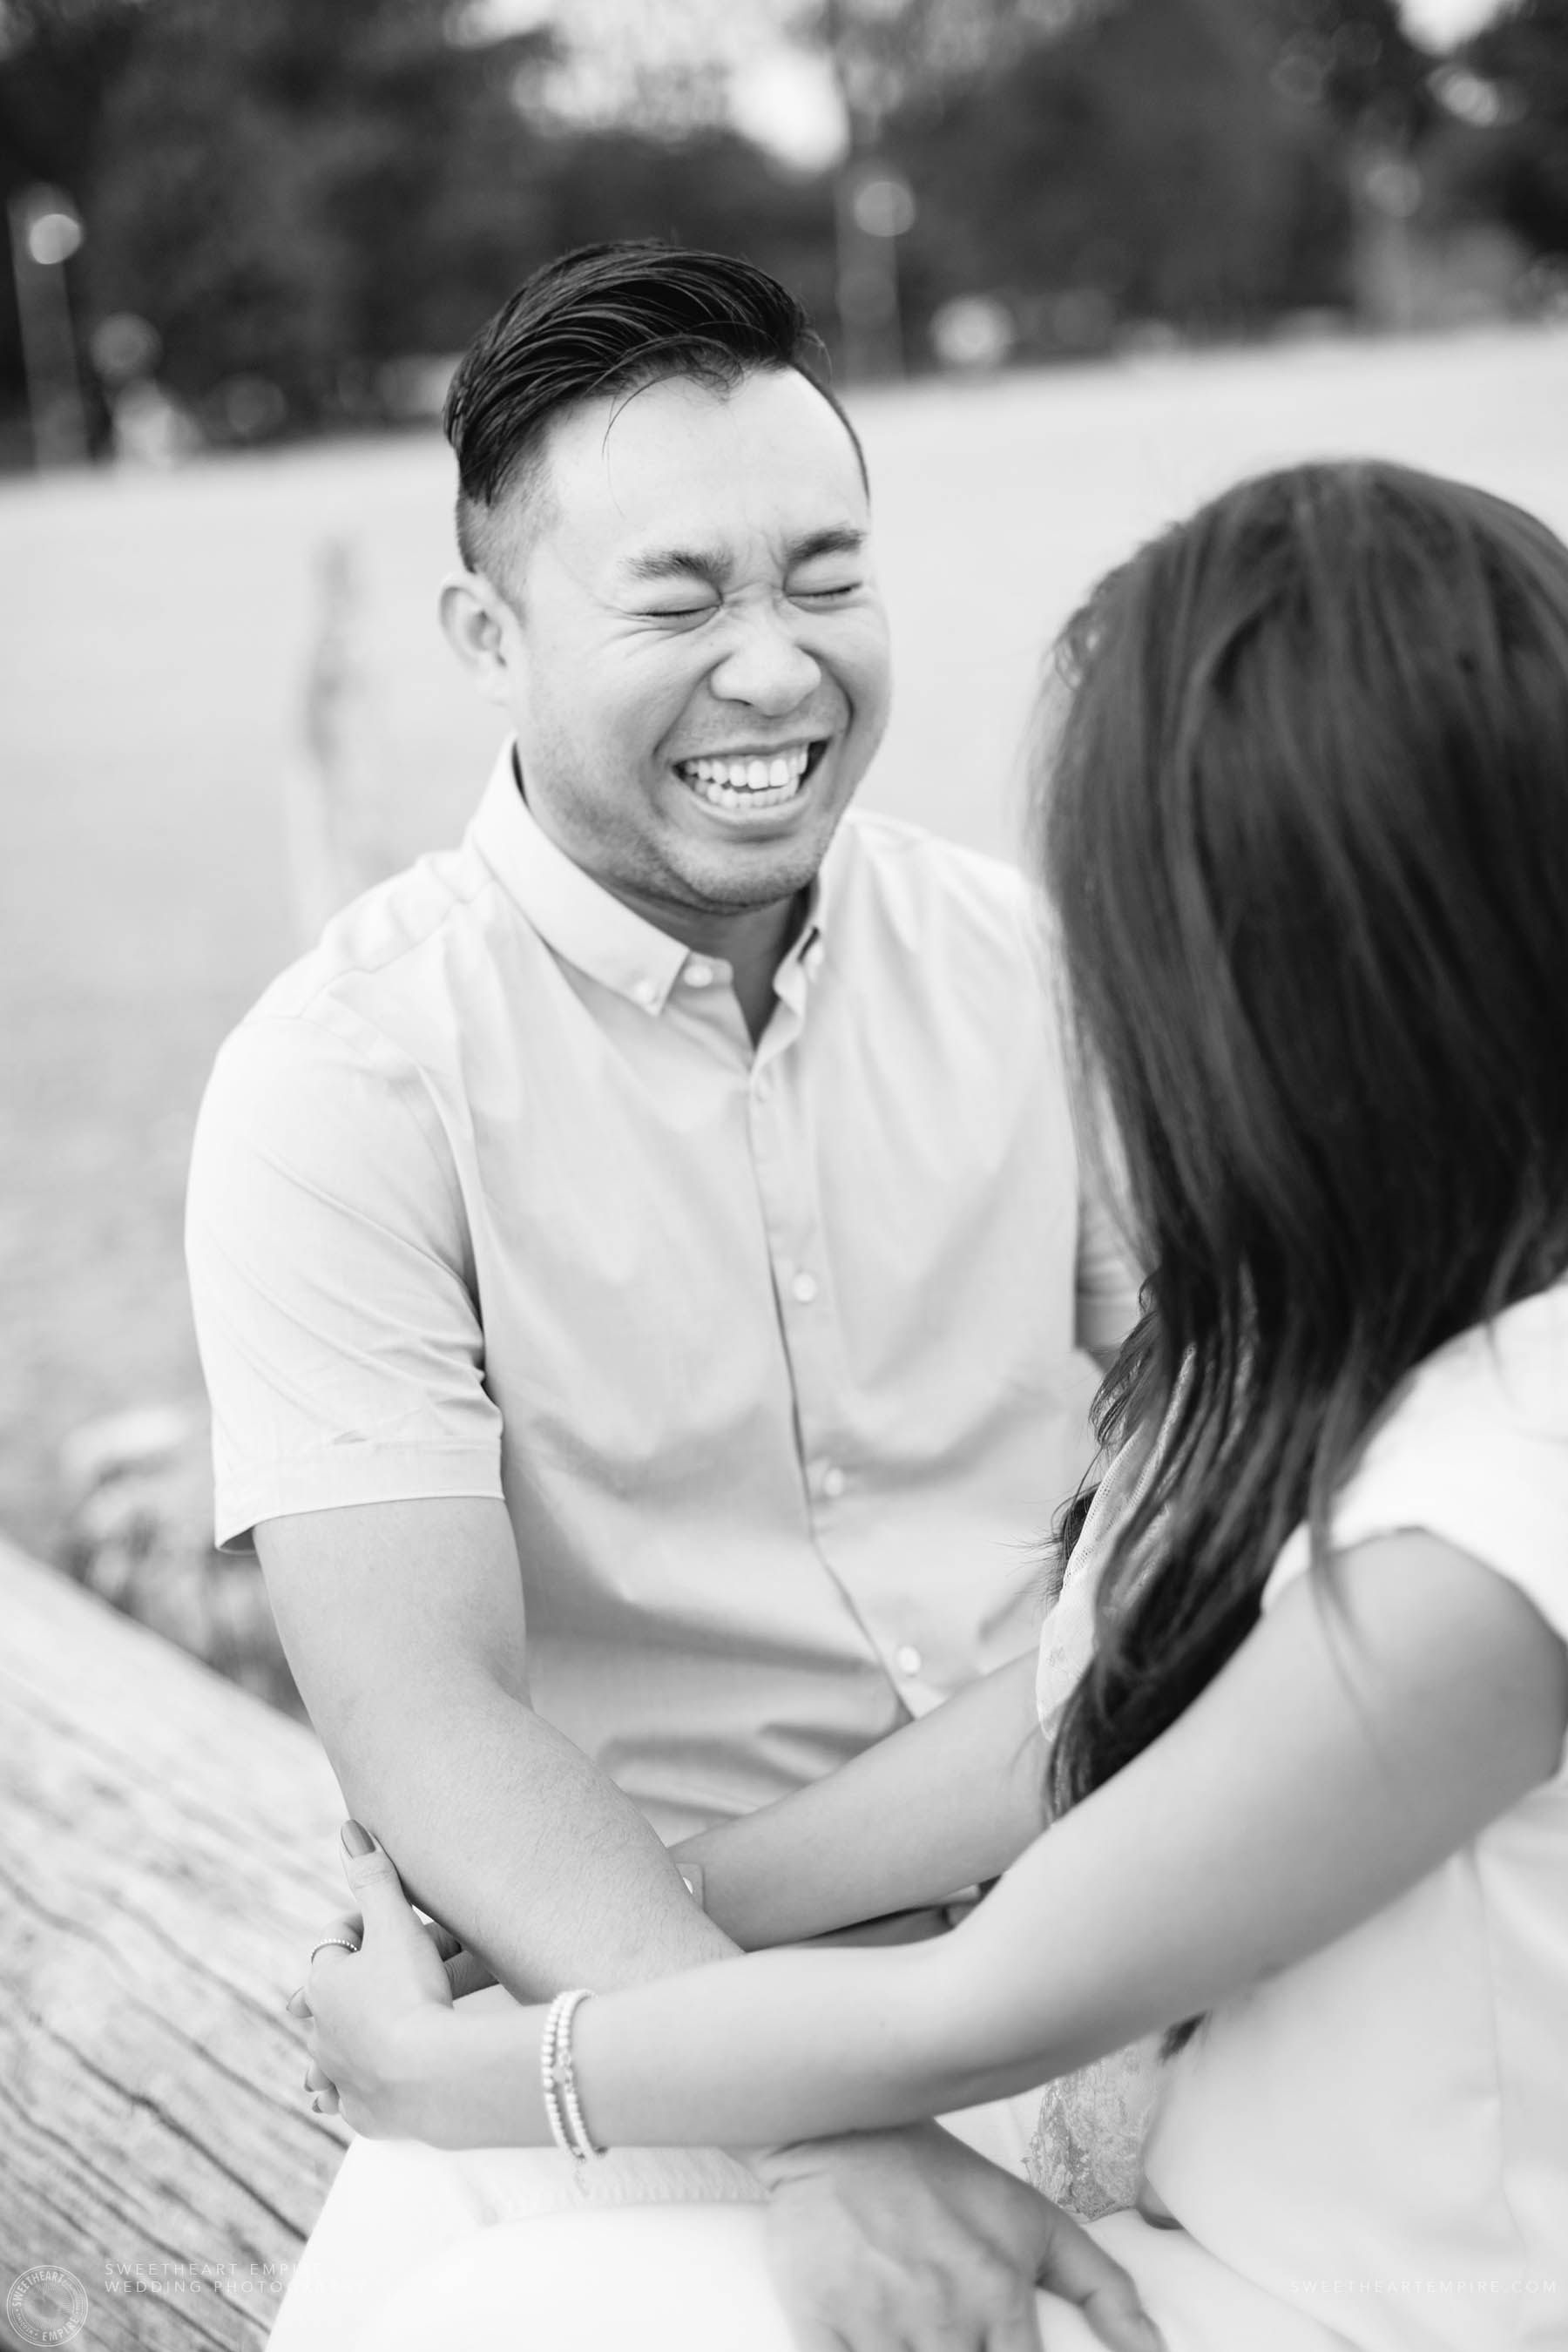 Groom to be laughing, Engagement Photos at Kew Gardens